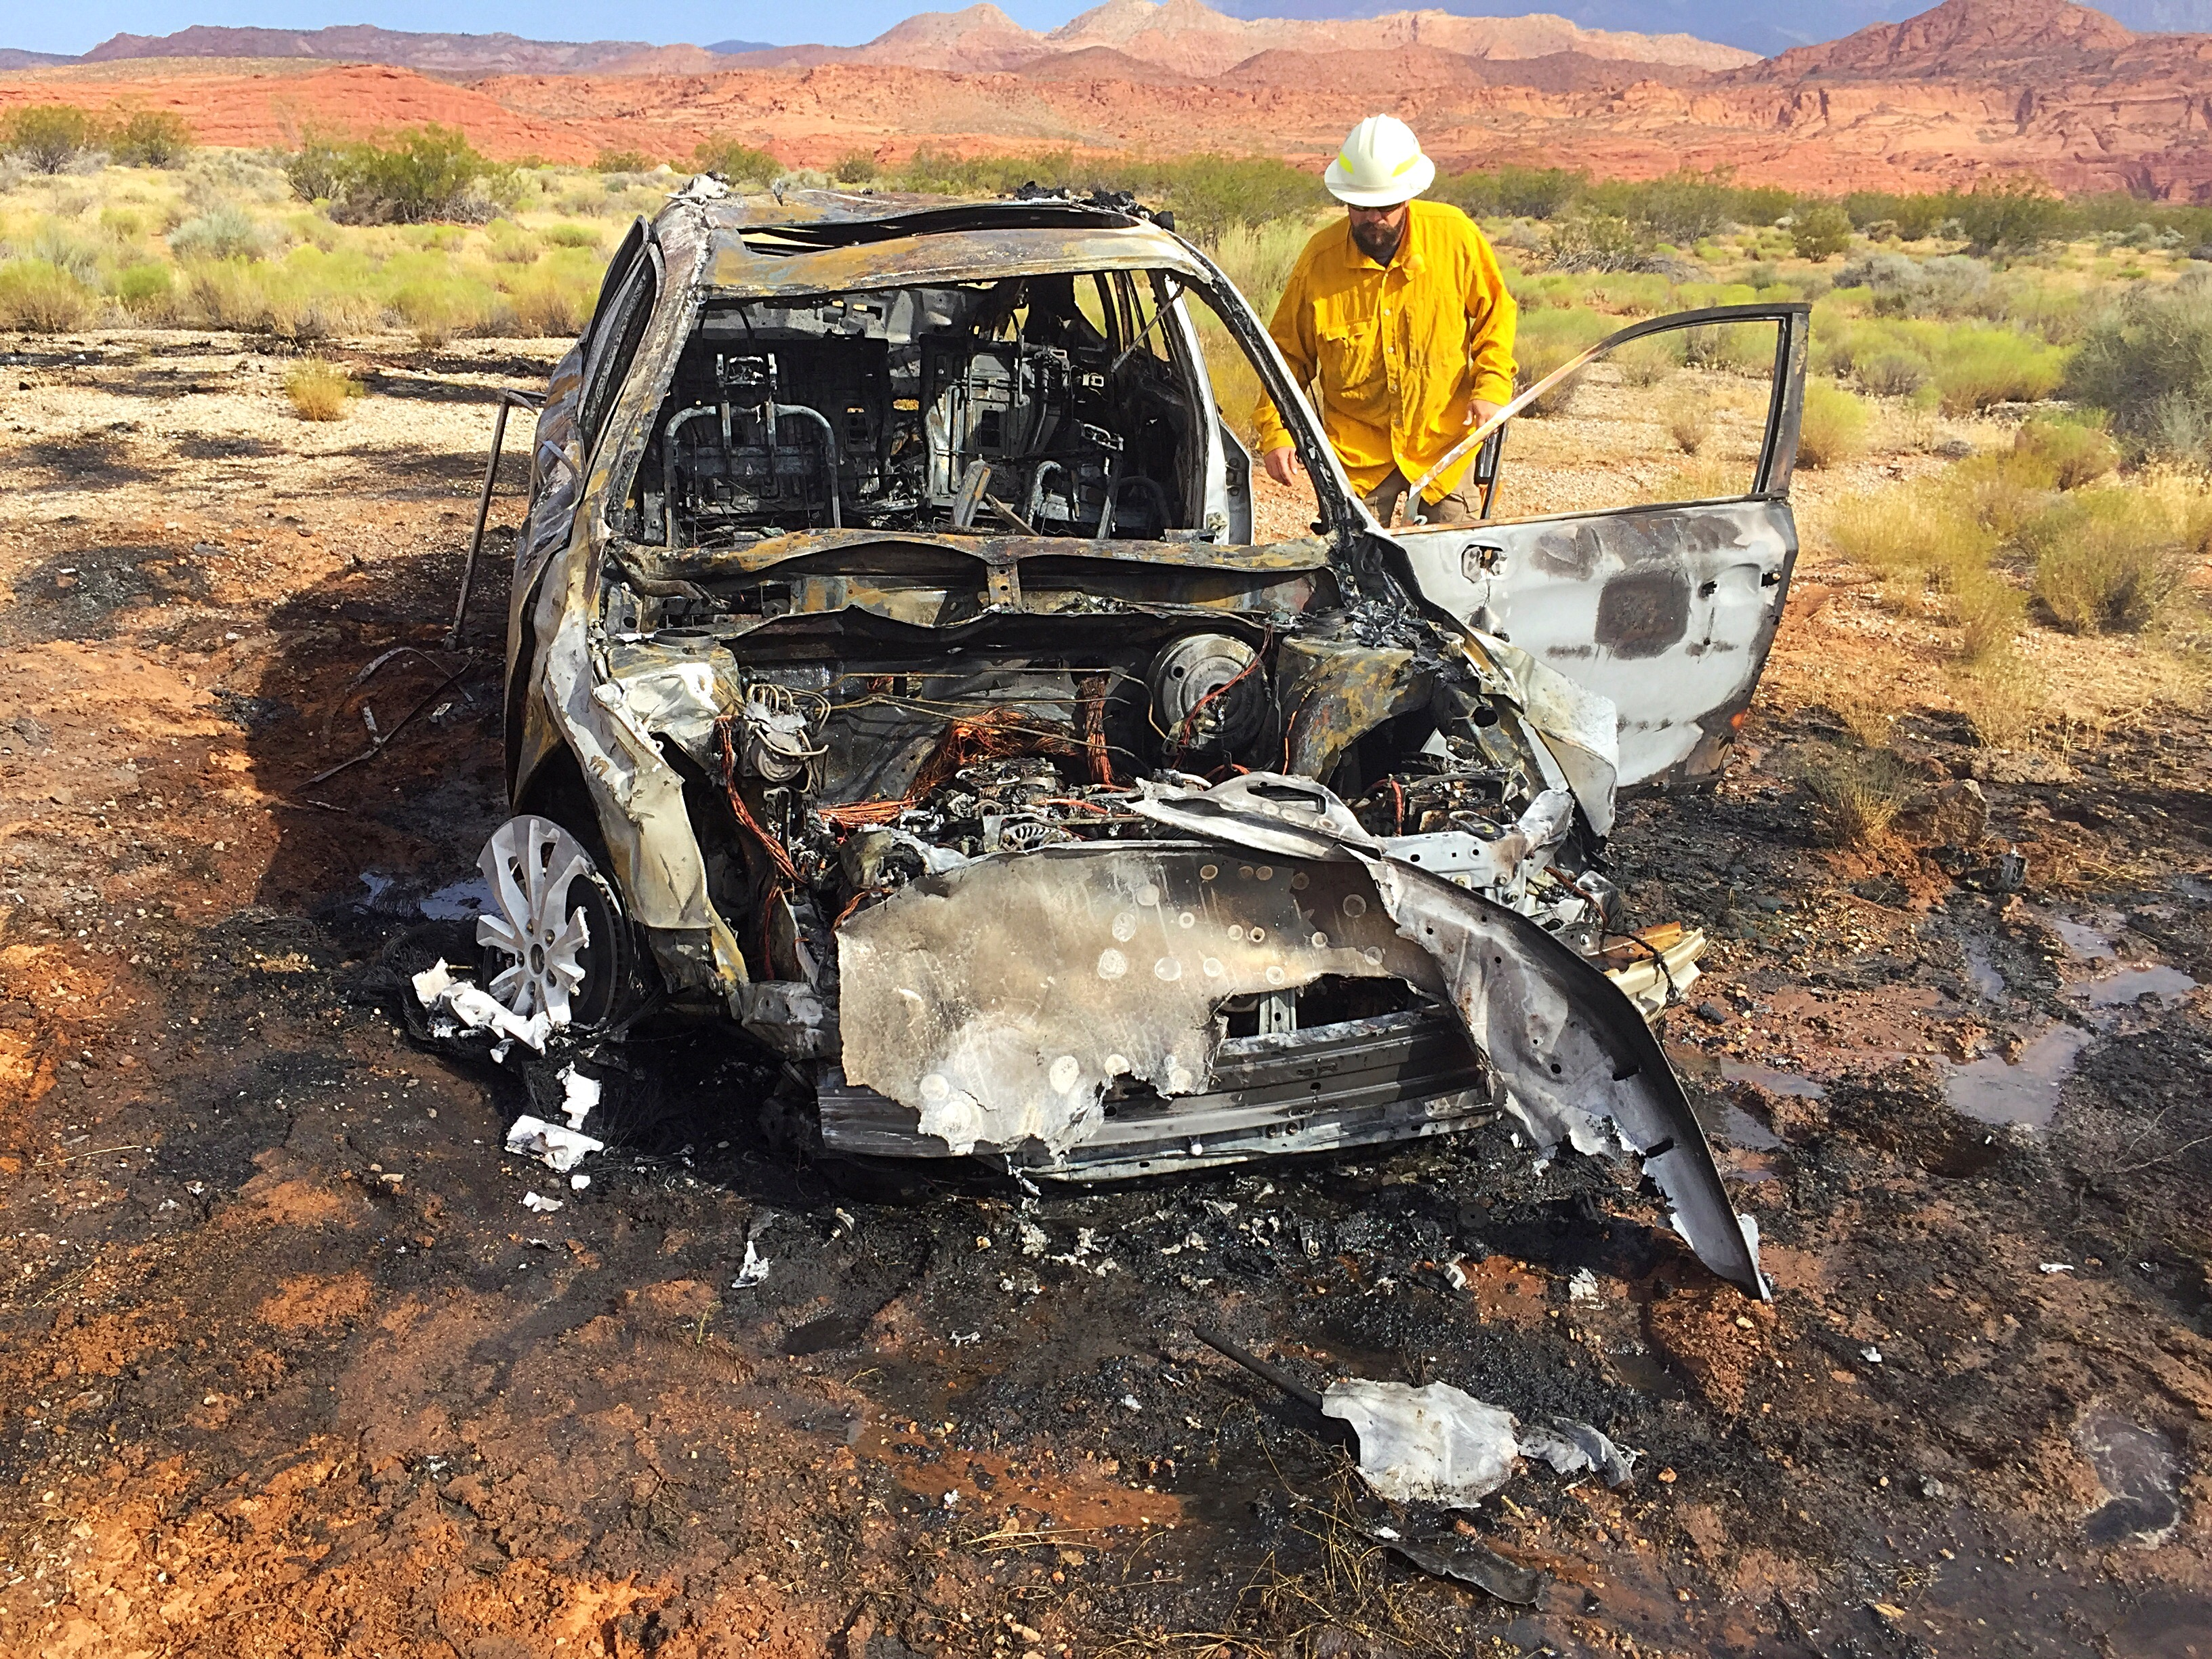 After being forced off the roadway by another vehicle, a Subaru Outback rolled before bursting into flames and igniting a brush fire in the median of Interstate 15 near milepost 19, Washington County, Utah, July 18, 2016 | Photo by Kimberly Scott, St. George News